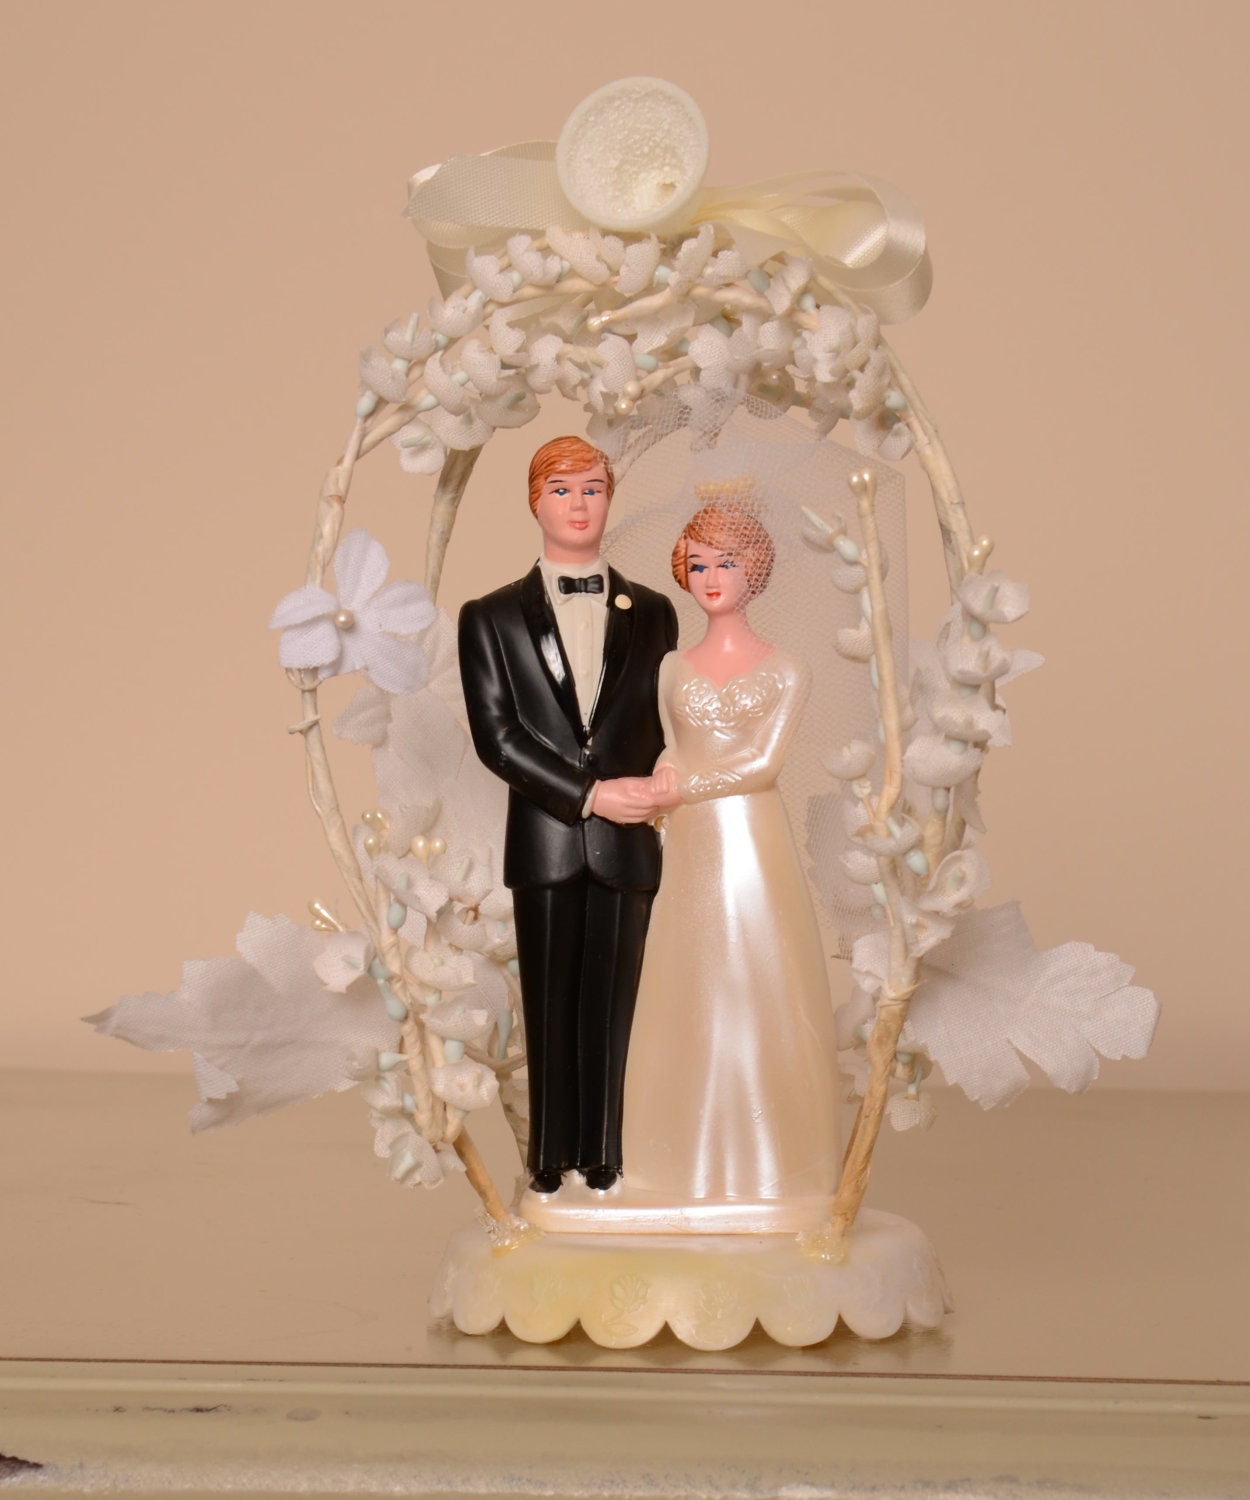 retro wedding cake toppers vintage amp groom wedding cake topper 19202